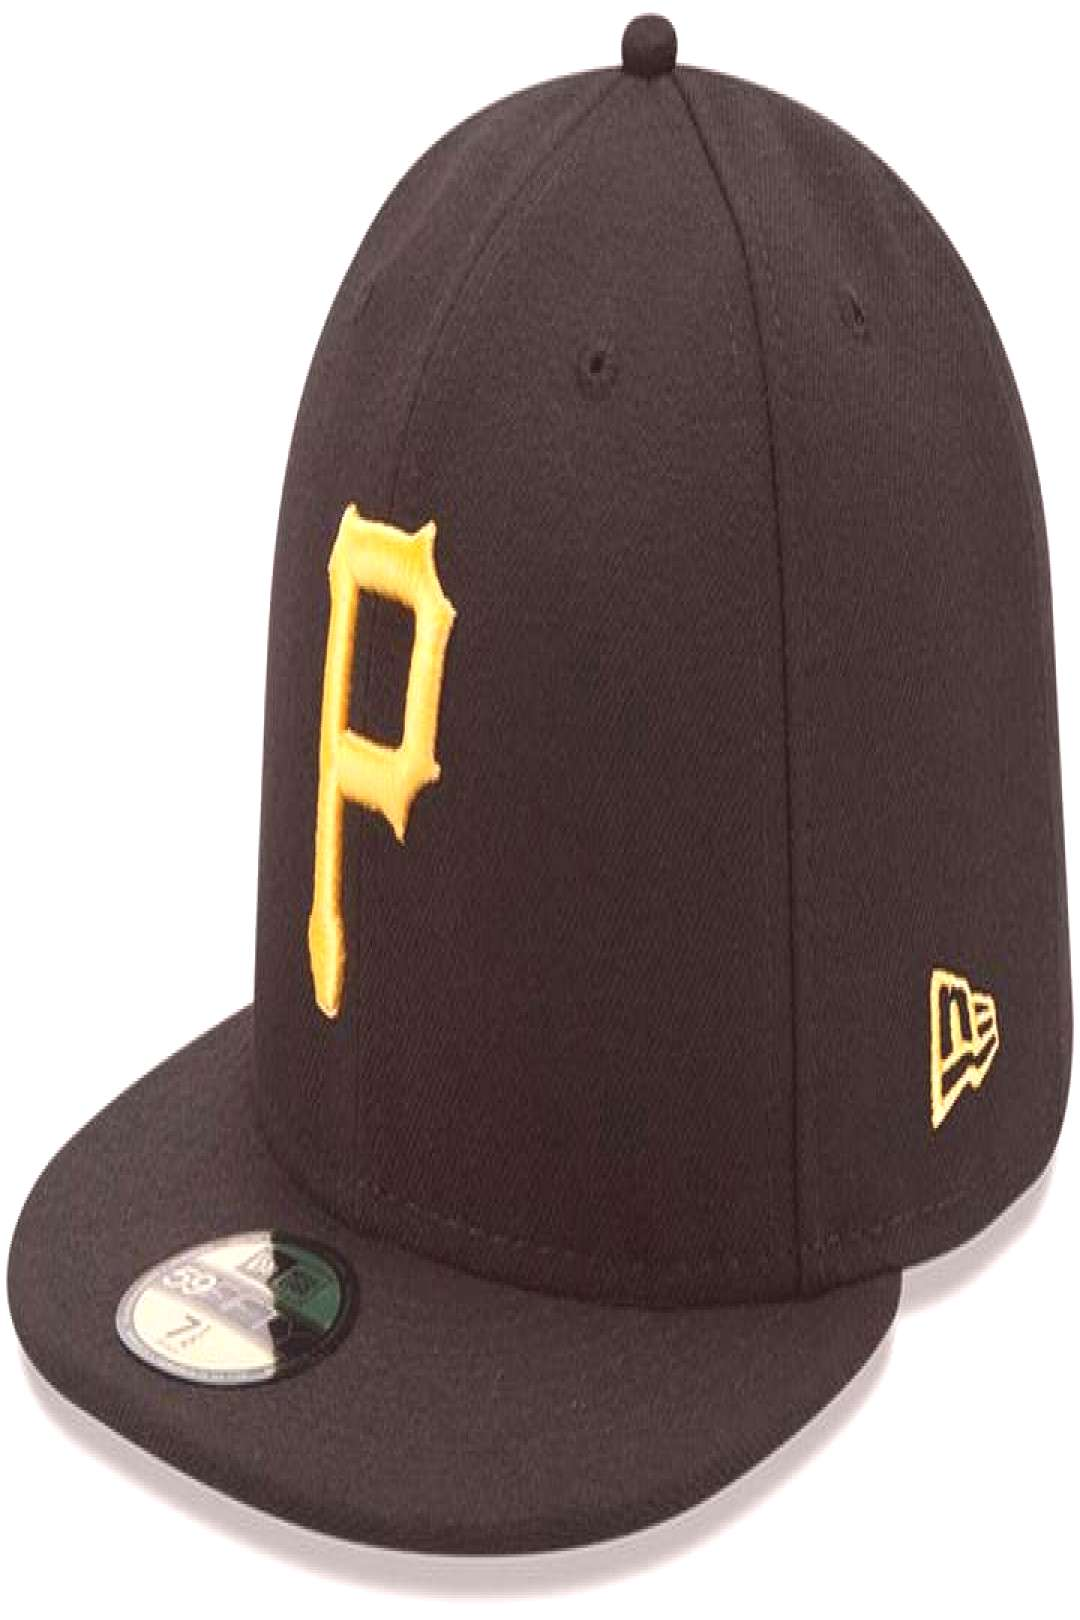 New Era Youth Black Pittsburgh Pirates Authentic Collection On-Field Game 59FIFTY Fitted Hat ,